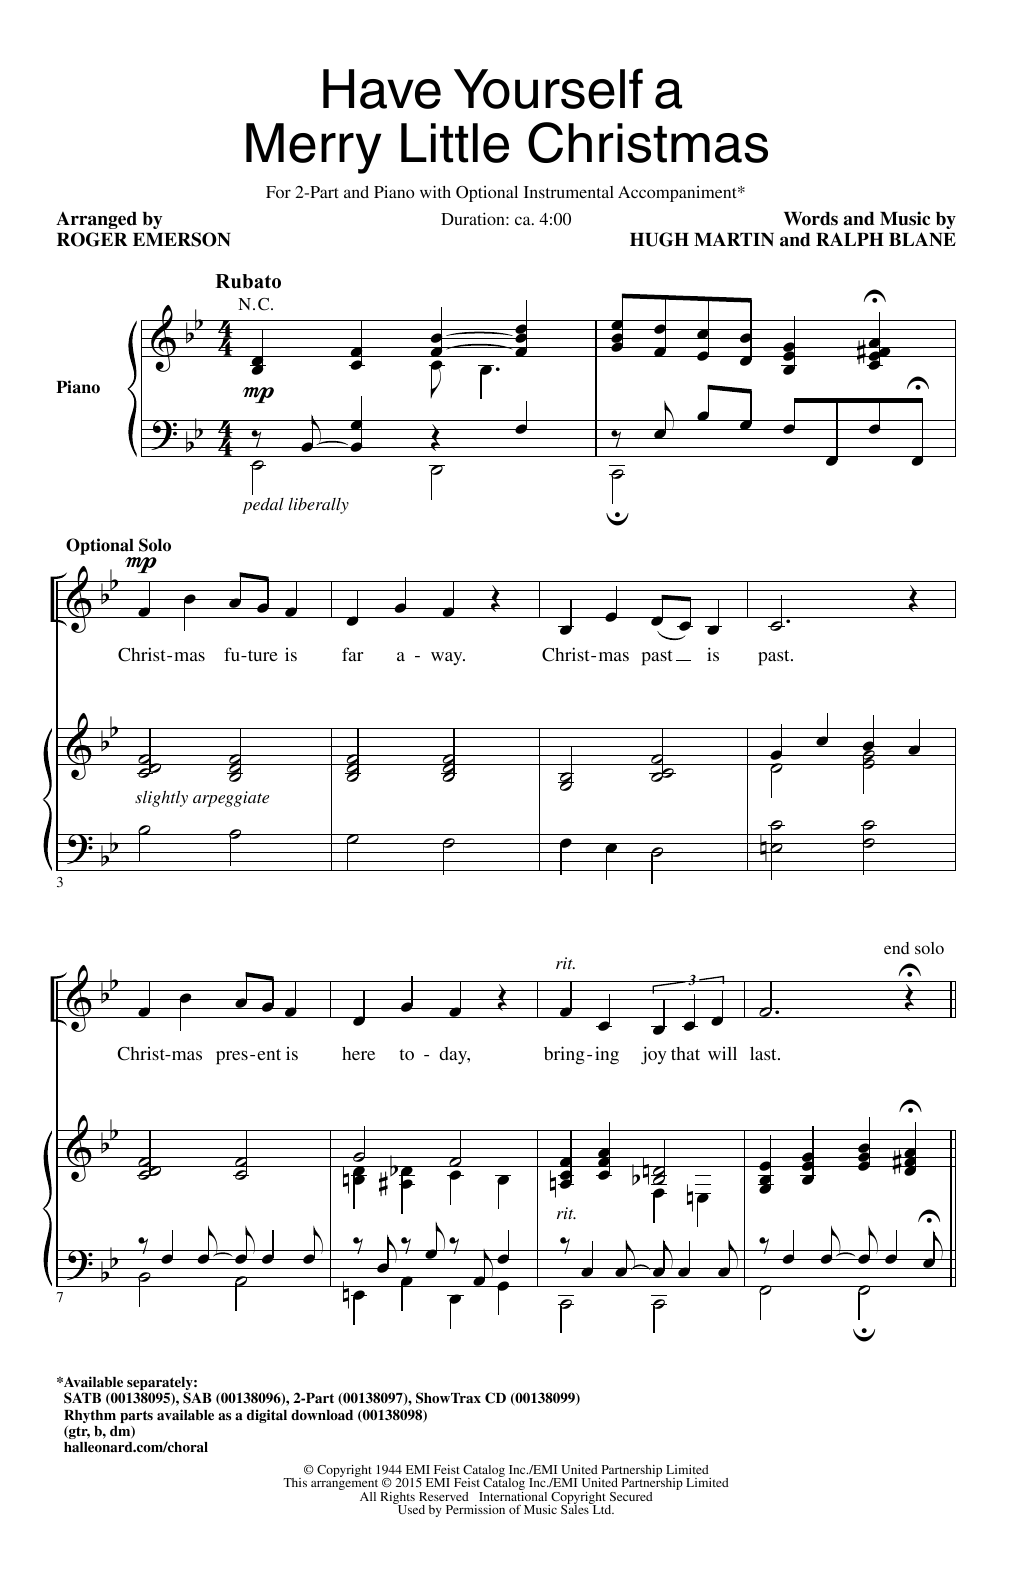 Have Yourself A Merry Little Christmas (arr. Roger Emerson) Sheet Music